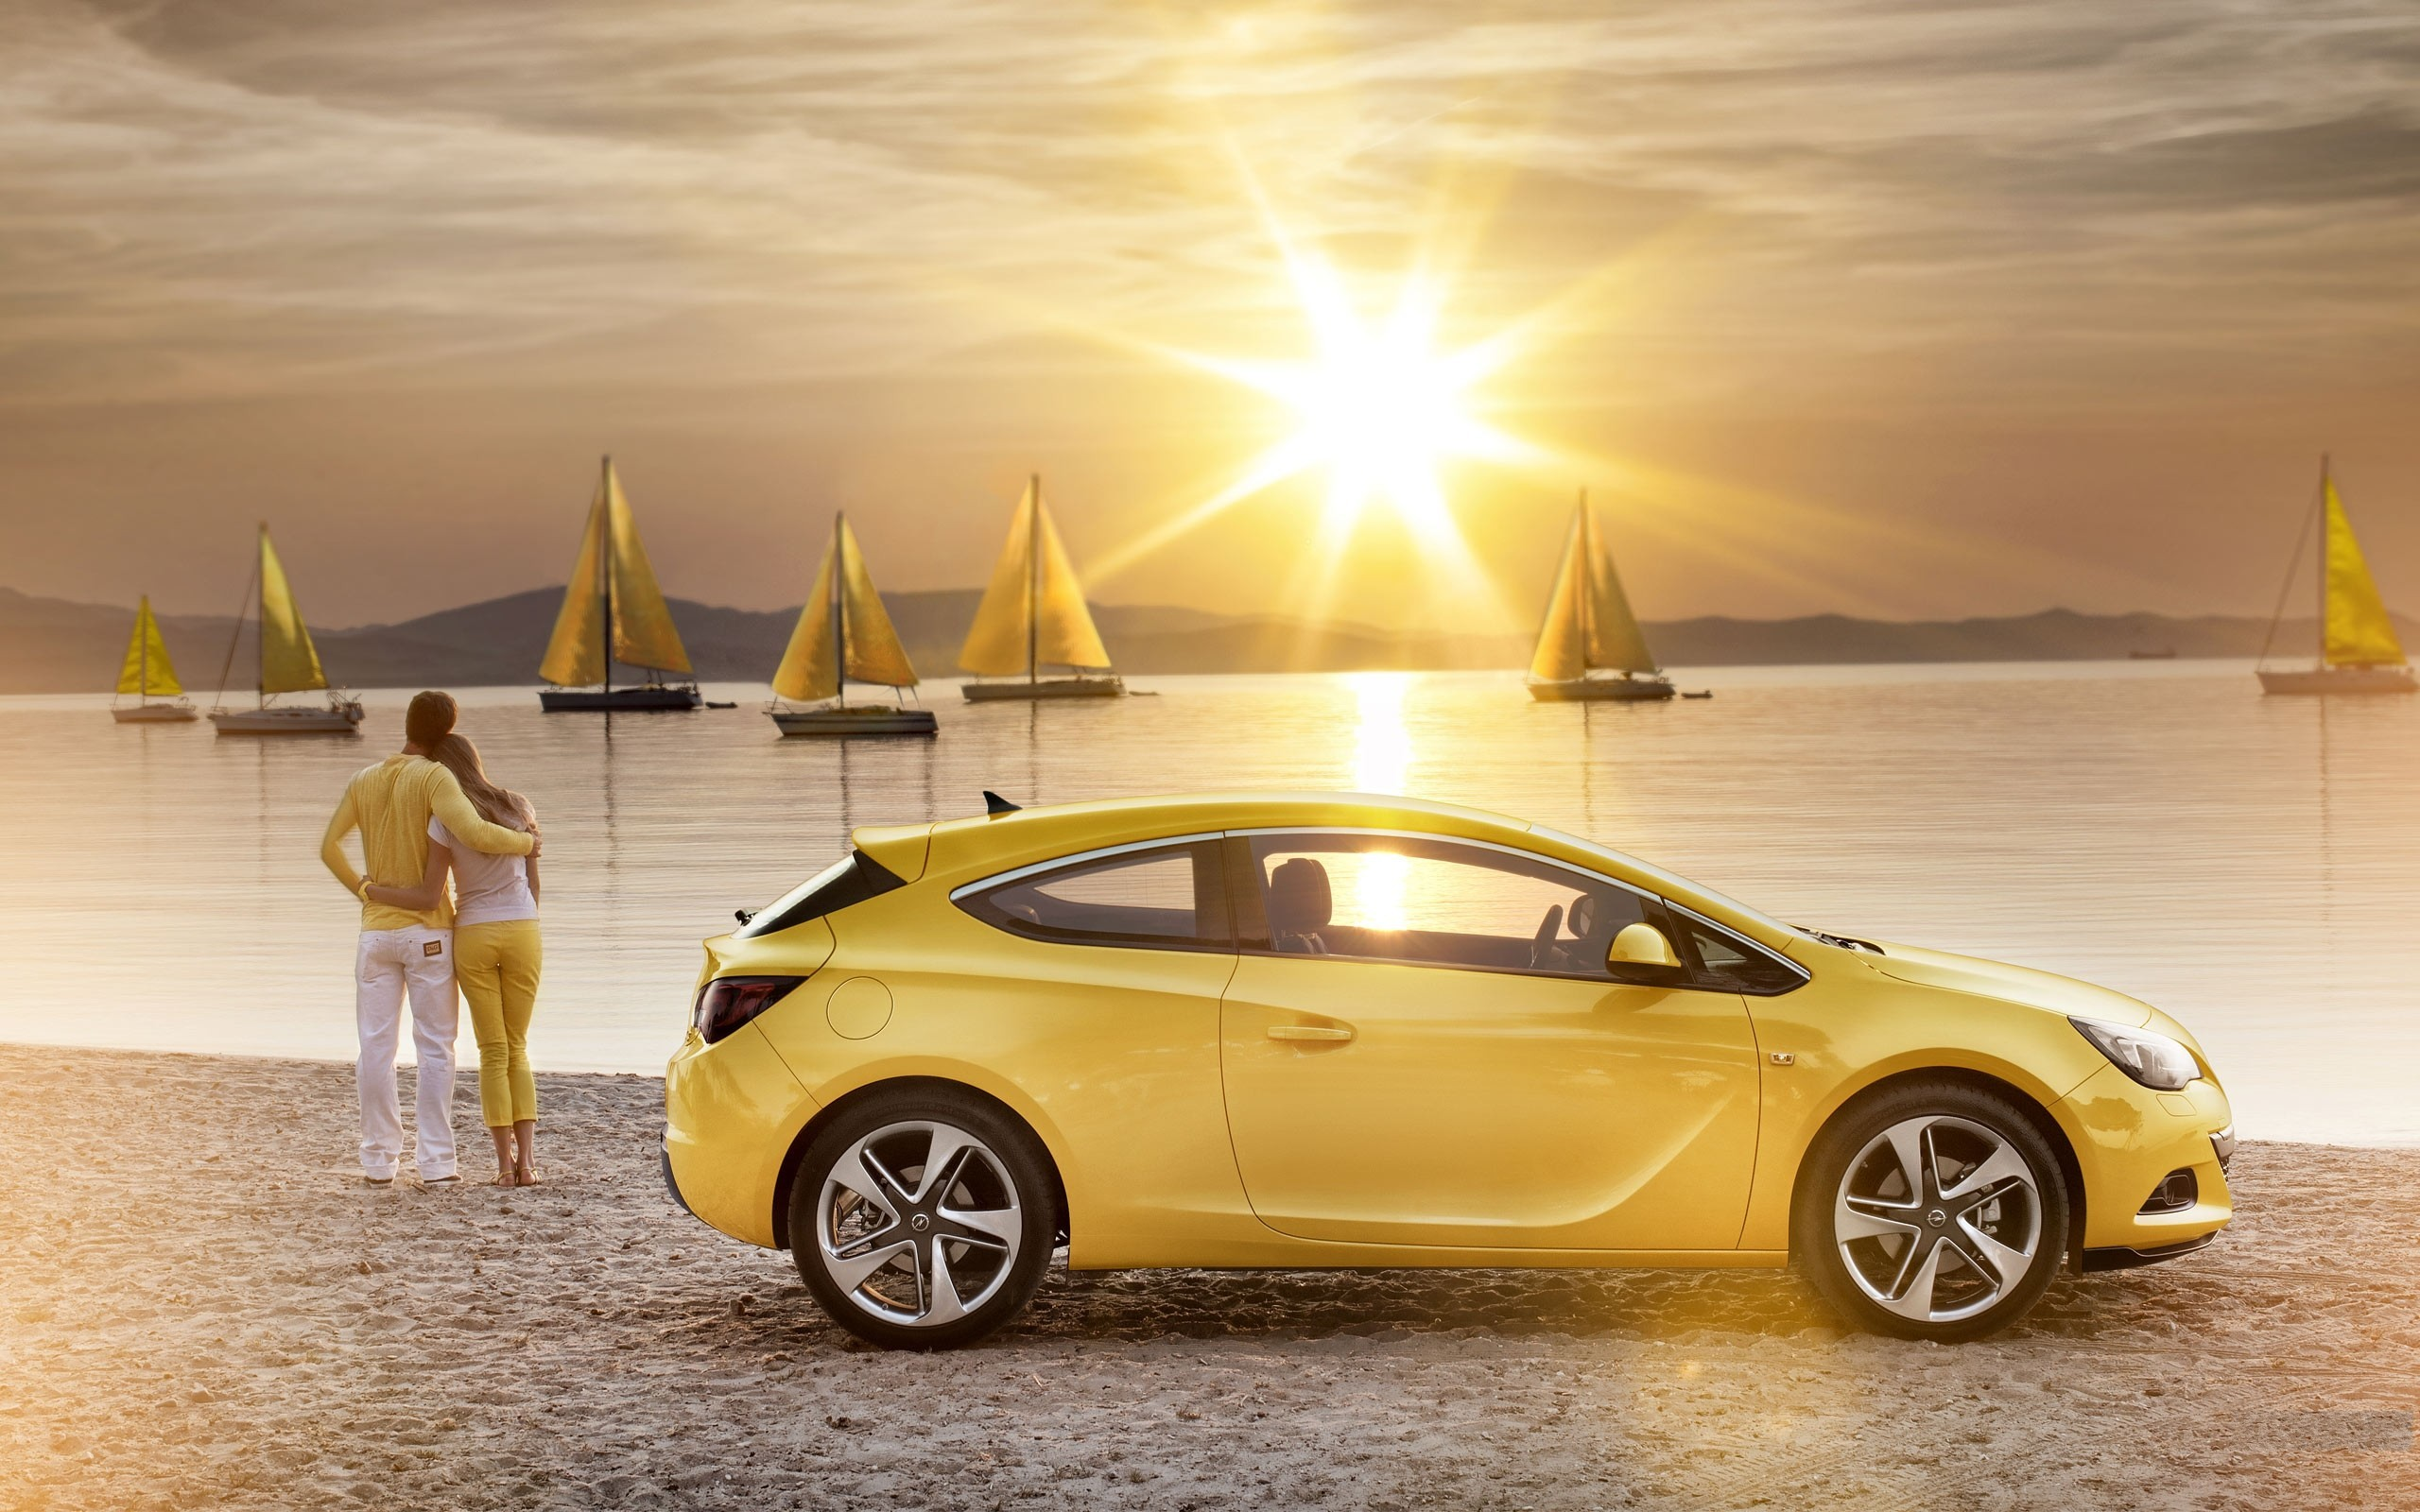 cars Opel Sailboats Opel HD Wallpaper